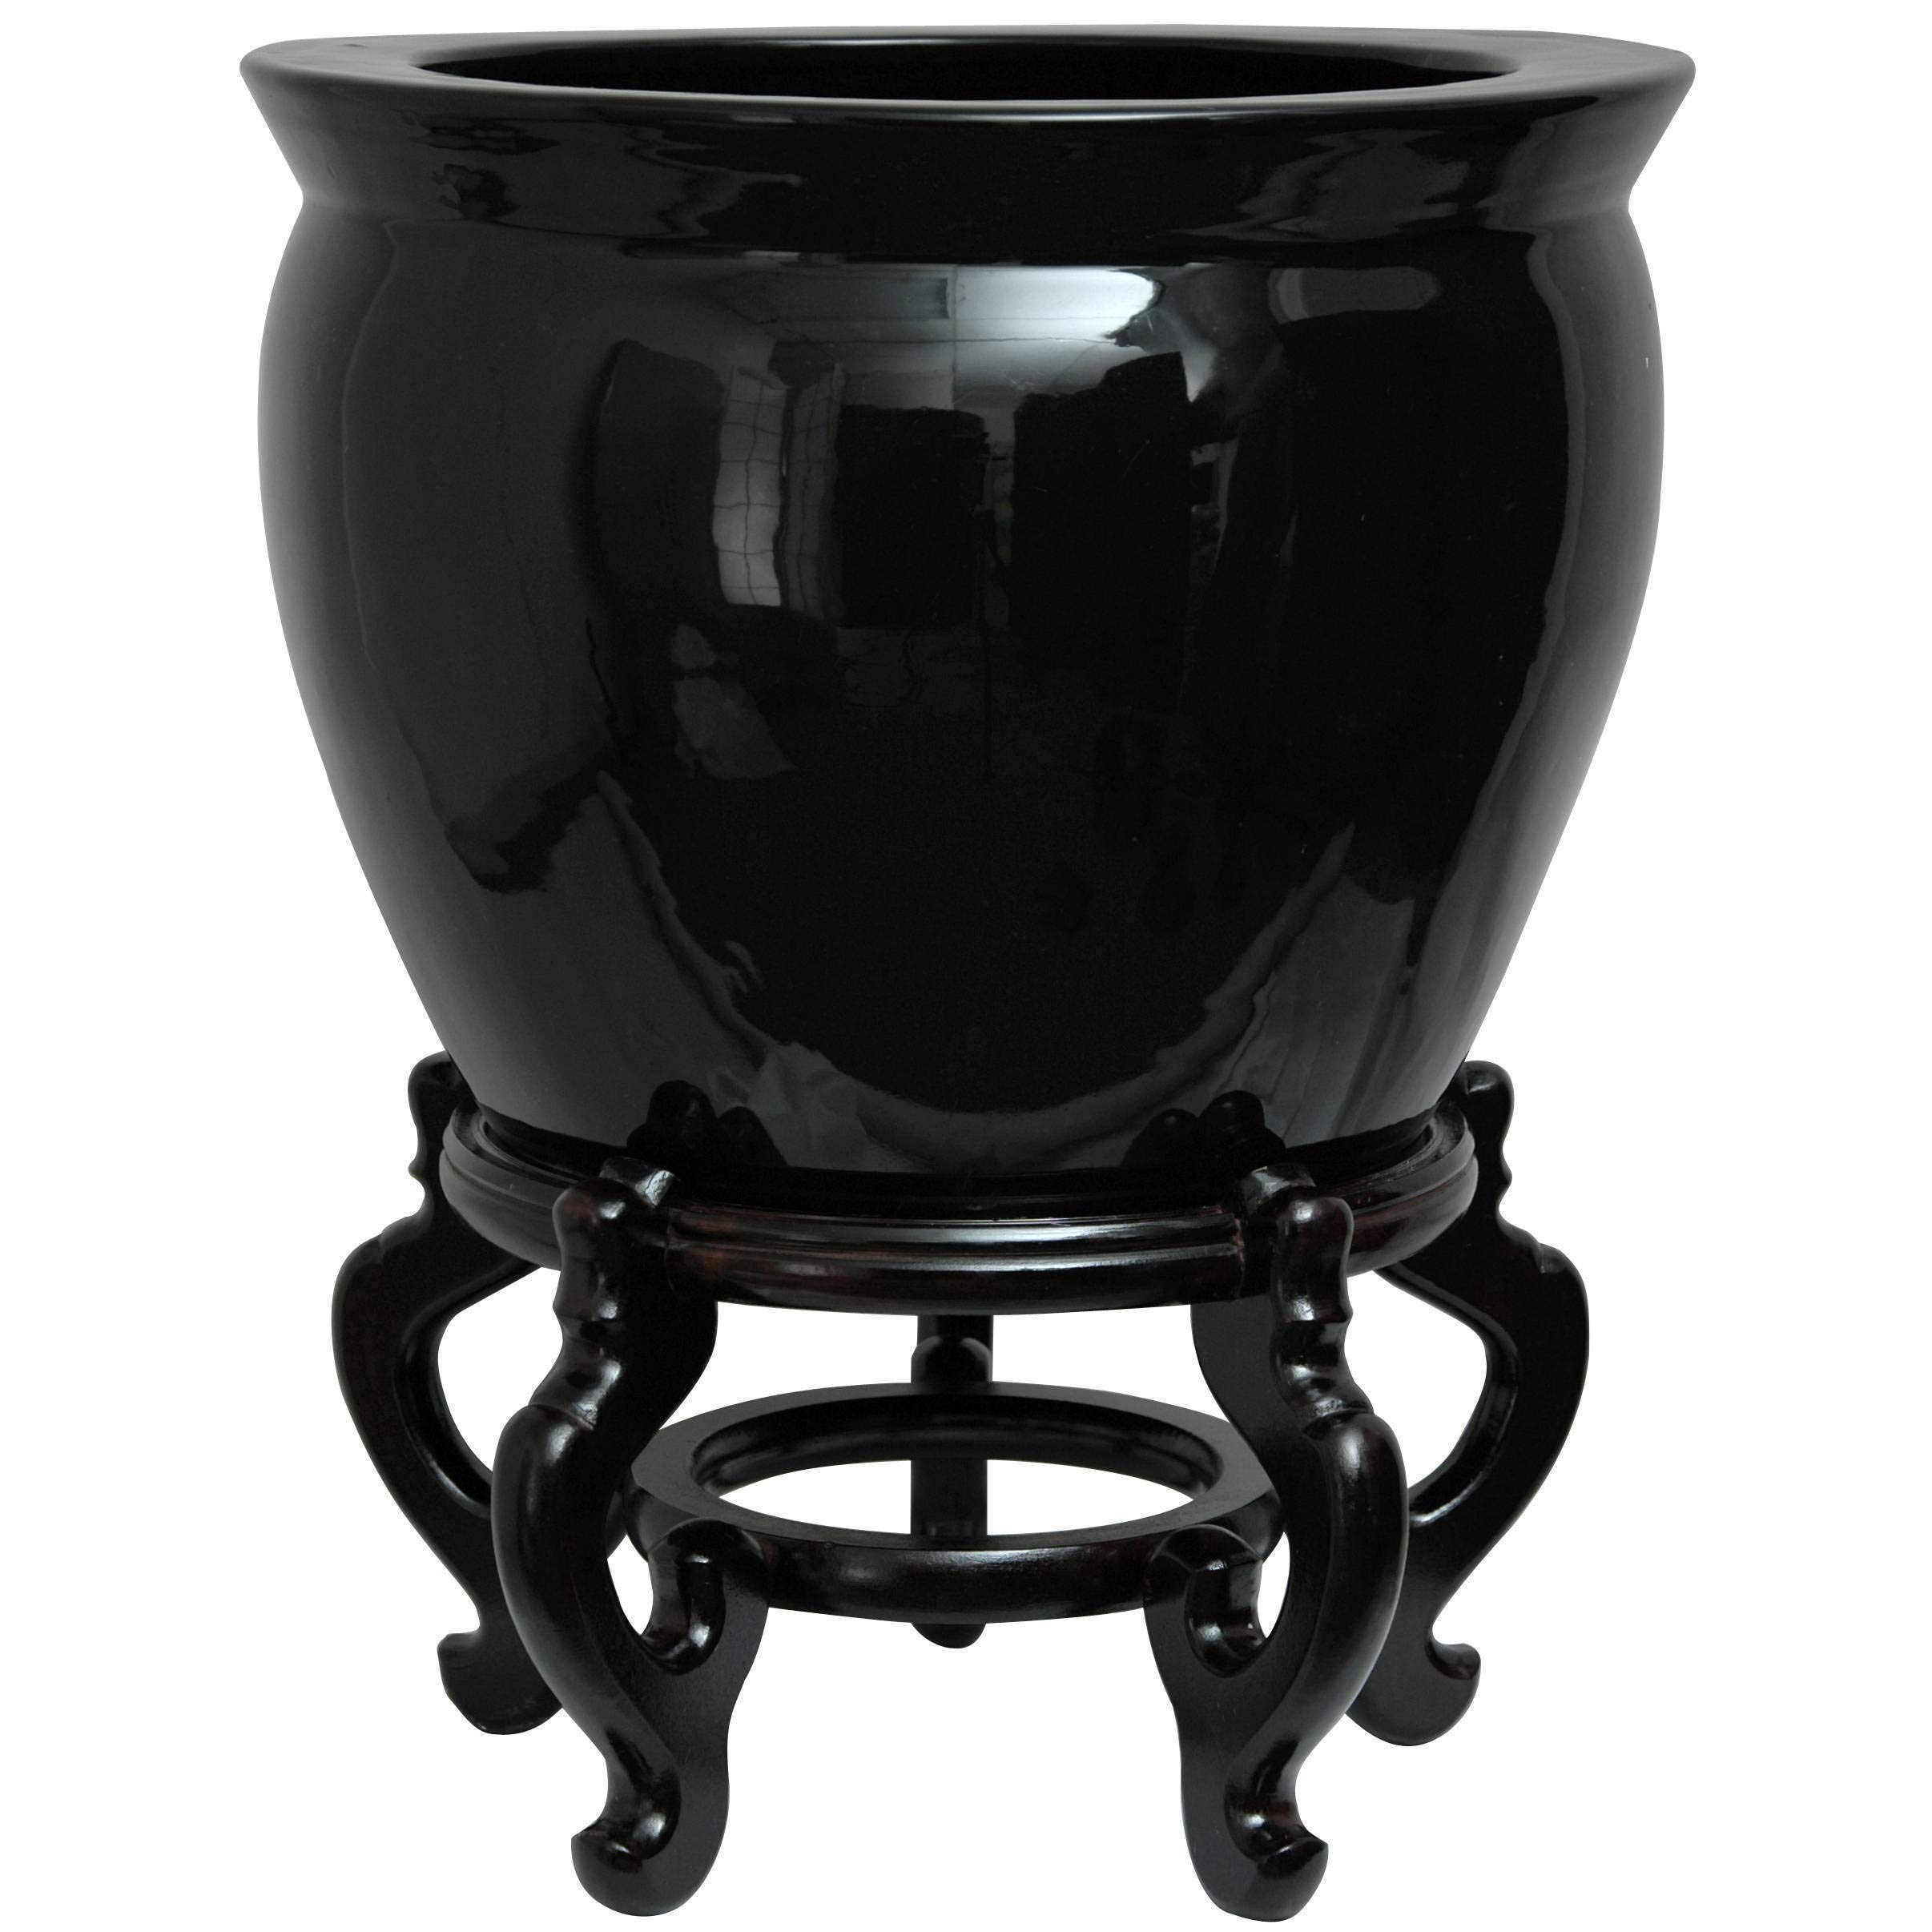 Handmade Porcelain 12-inch Solid Black Fishbowl (China) by Unknown